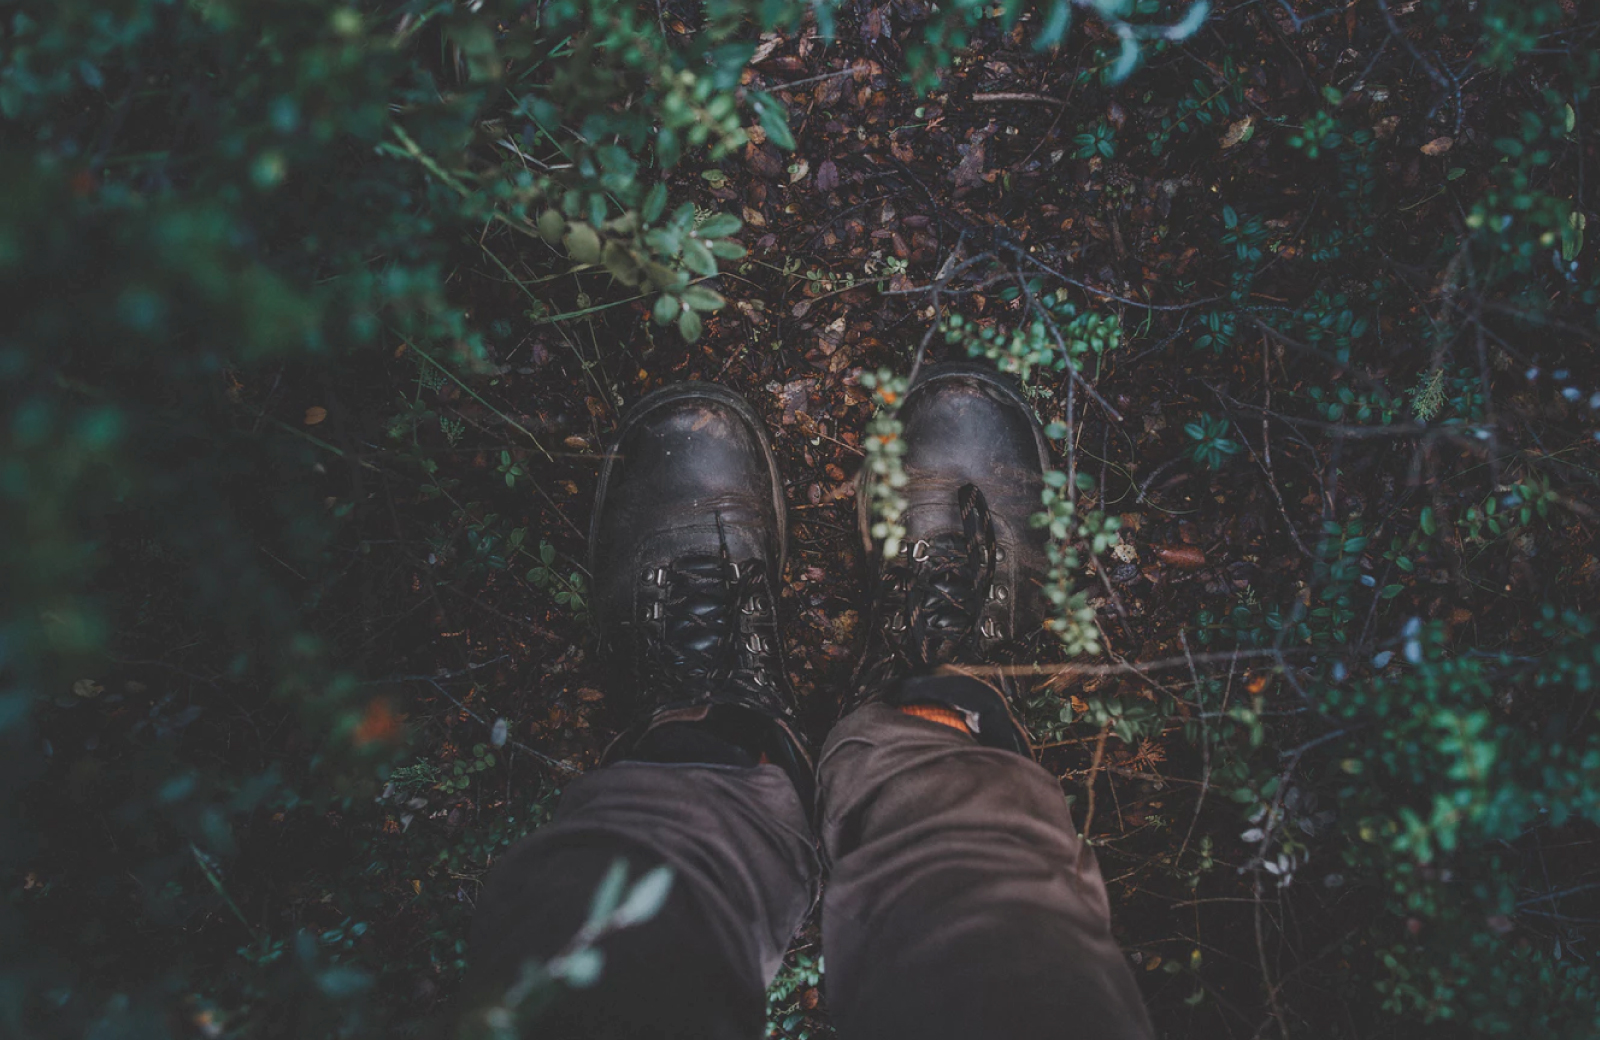 Hiking Trails in Fairfield County